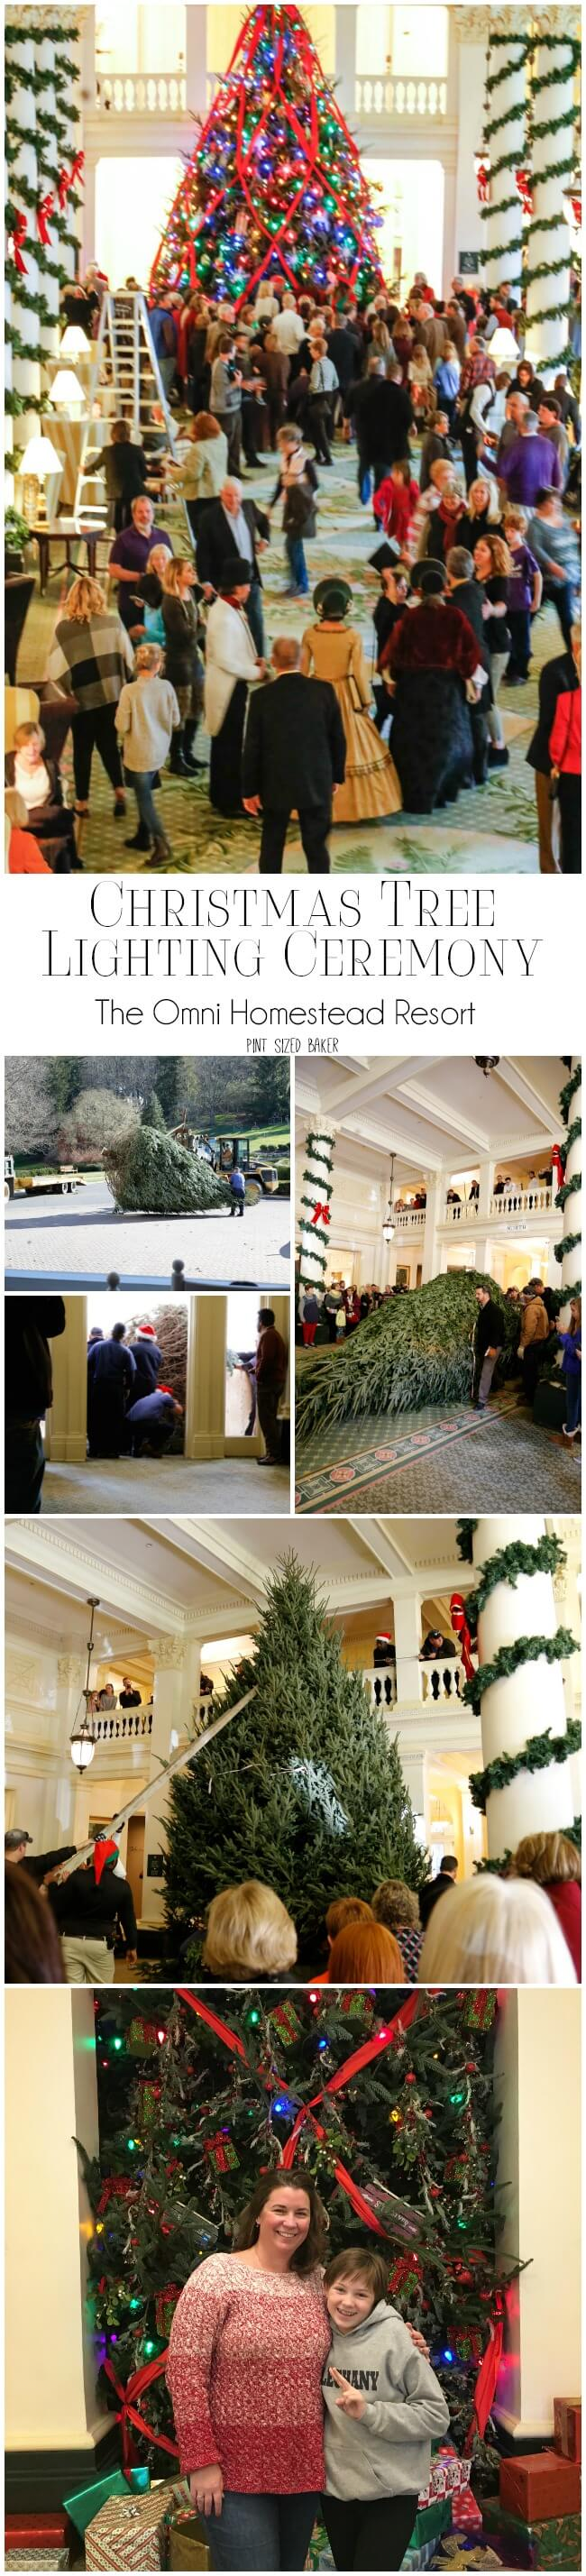 Get away to The Omni Homestead resort for an amazing vacation over the Christmas Holidays! Visit the week before Thanksgiving until the week after New Year's to experience their Christmas Activities.